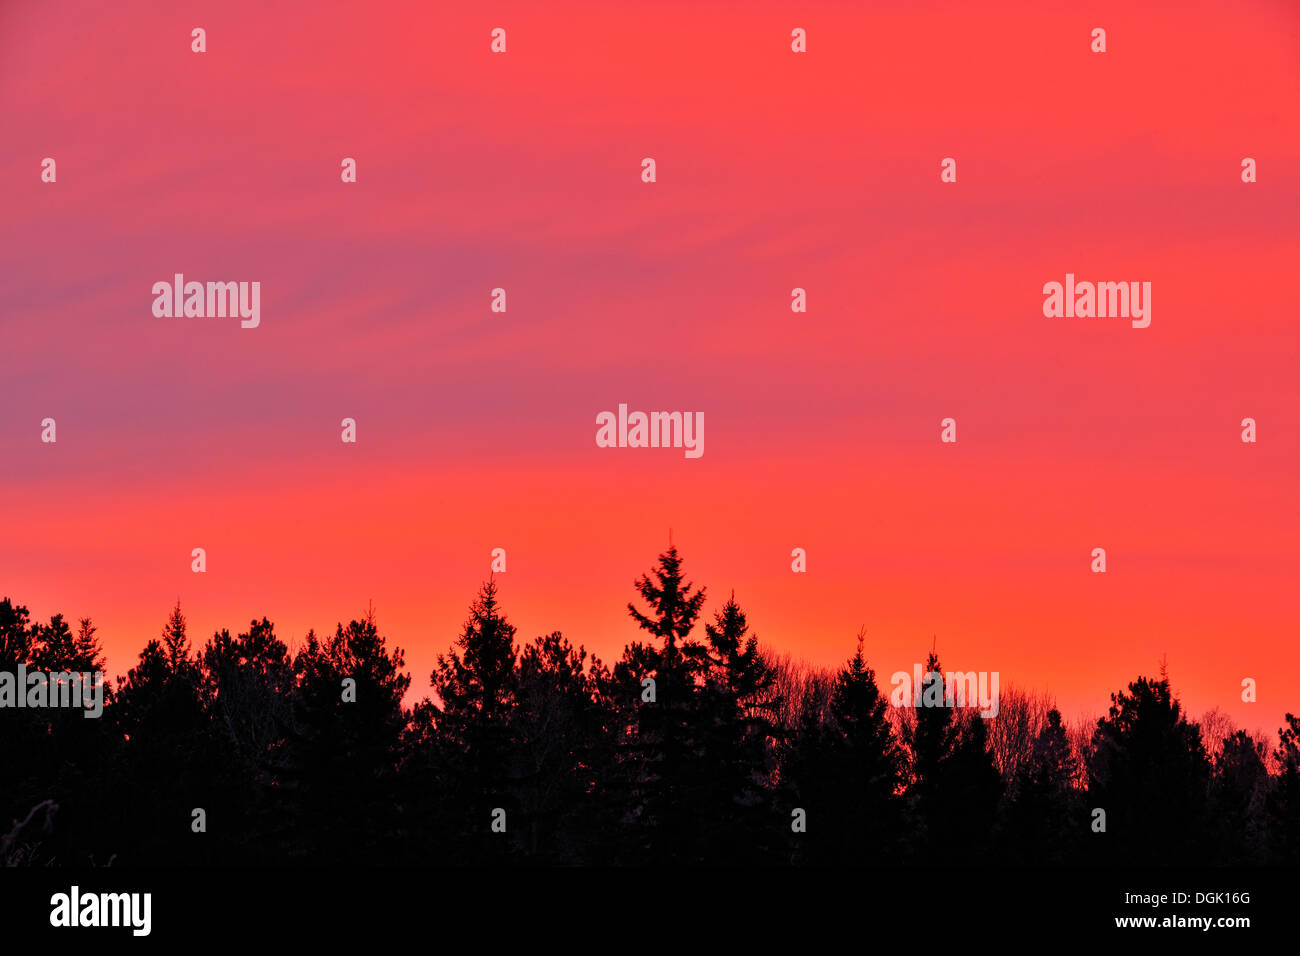 Sunrise skies over frosted spruces and alders Greater Sudbury Ontario Canada - Stock Image